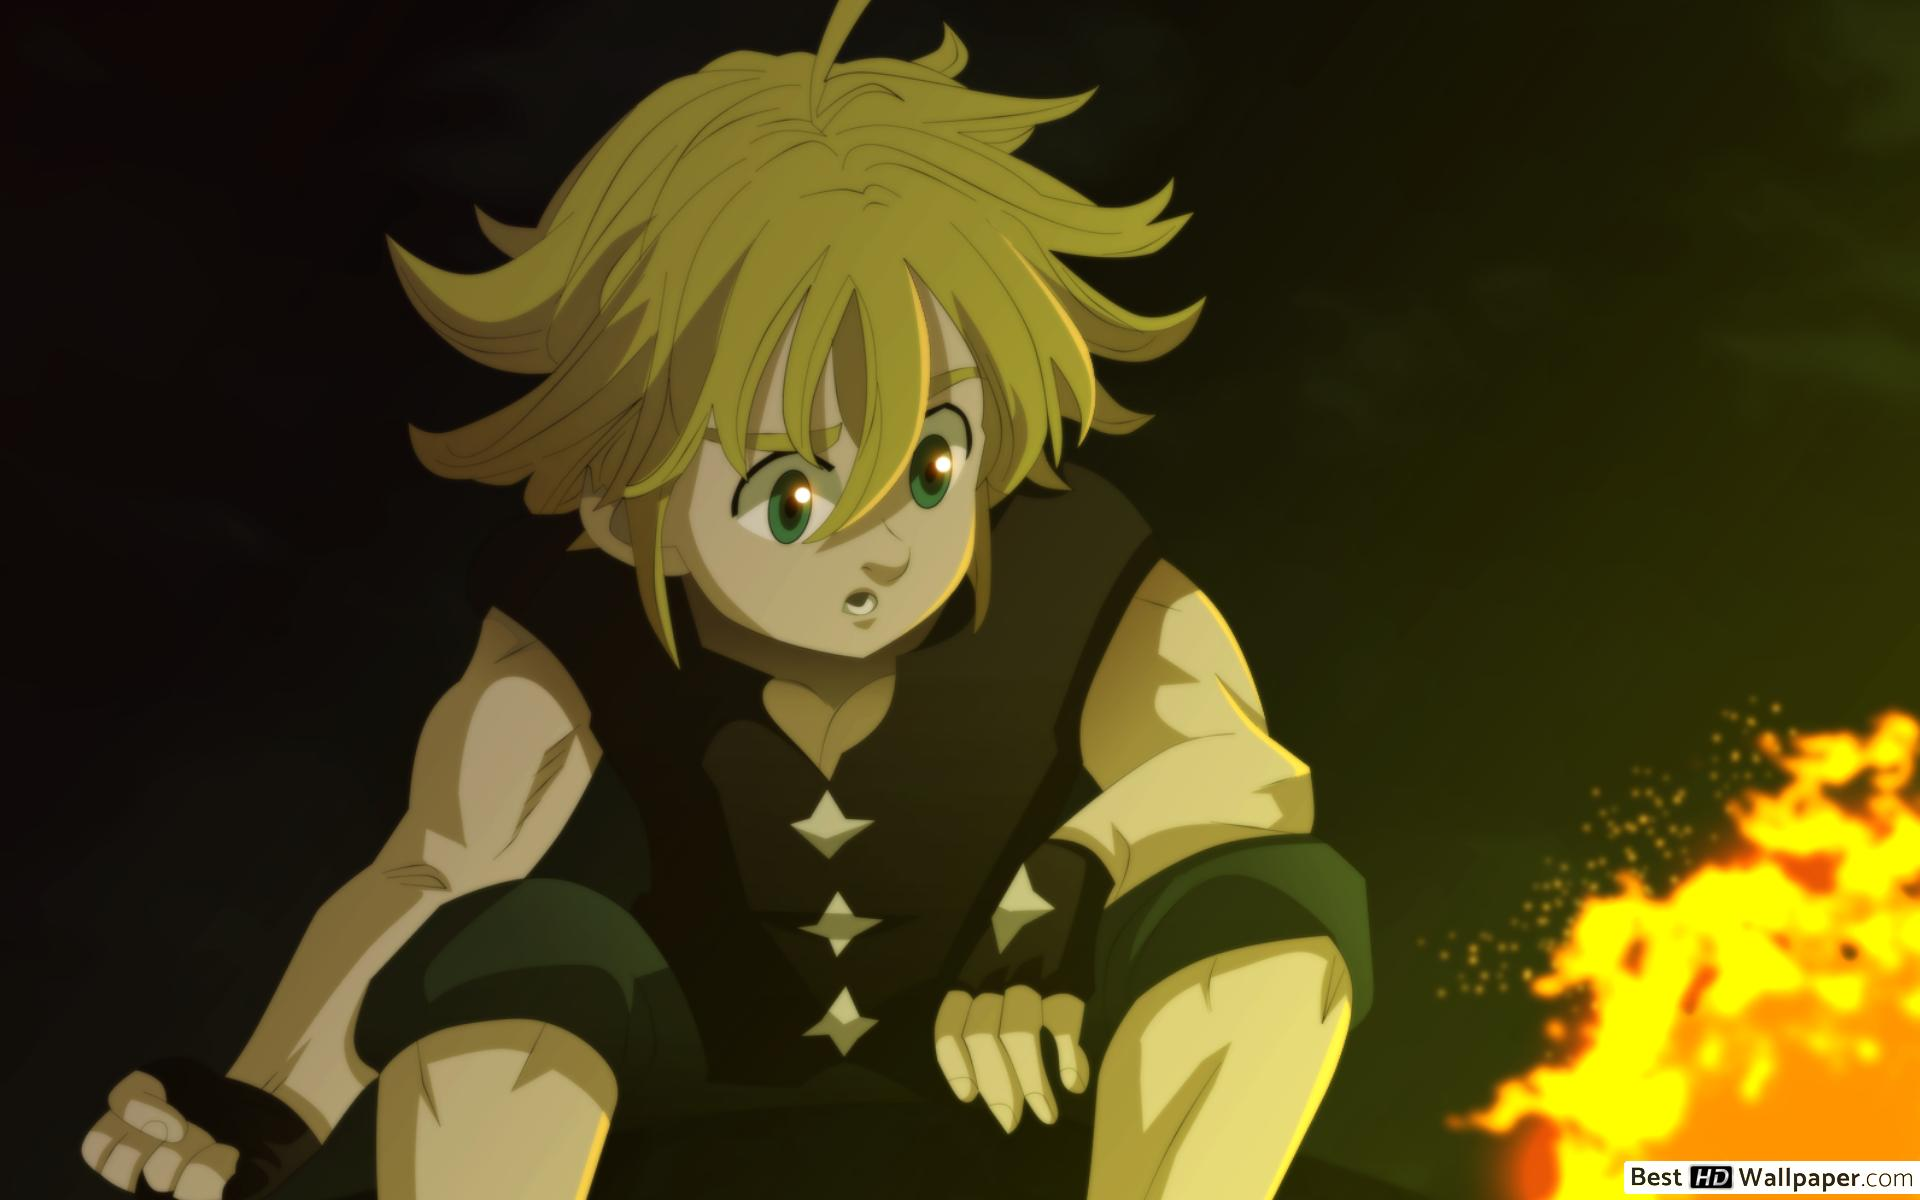 Nanatsu No Taizai Wallpaper Hd Posted By Michelle Sellers